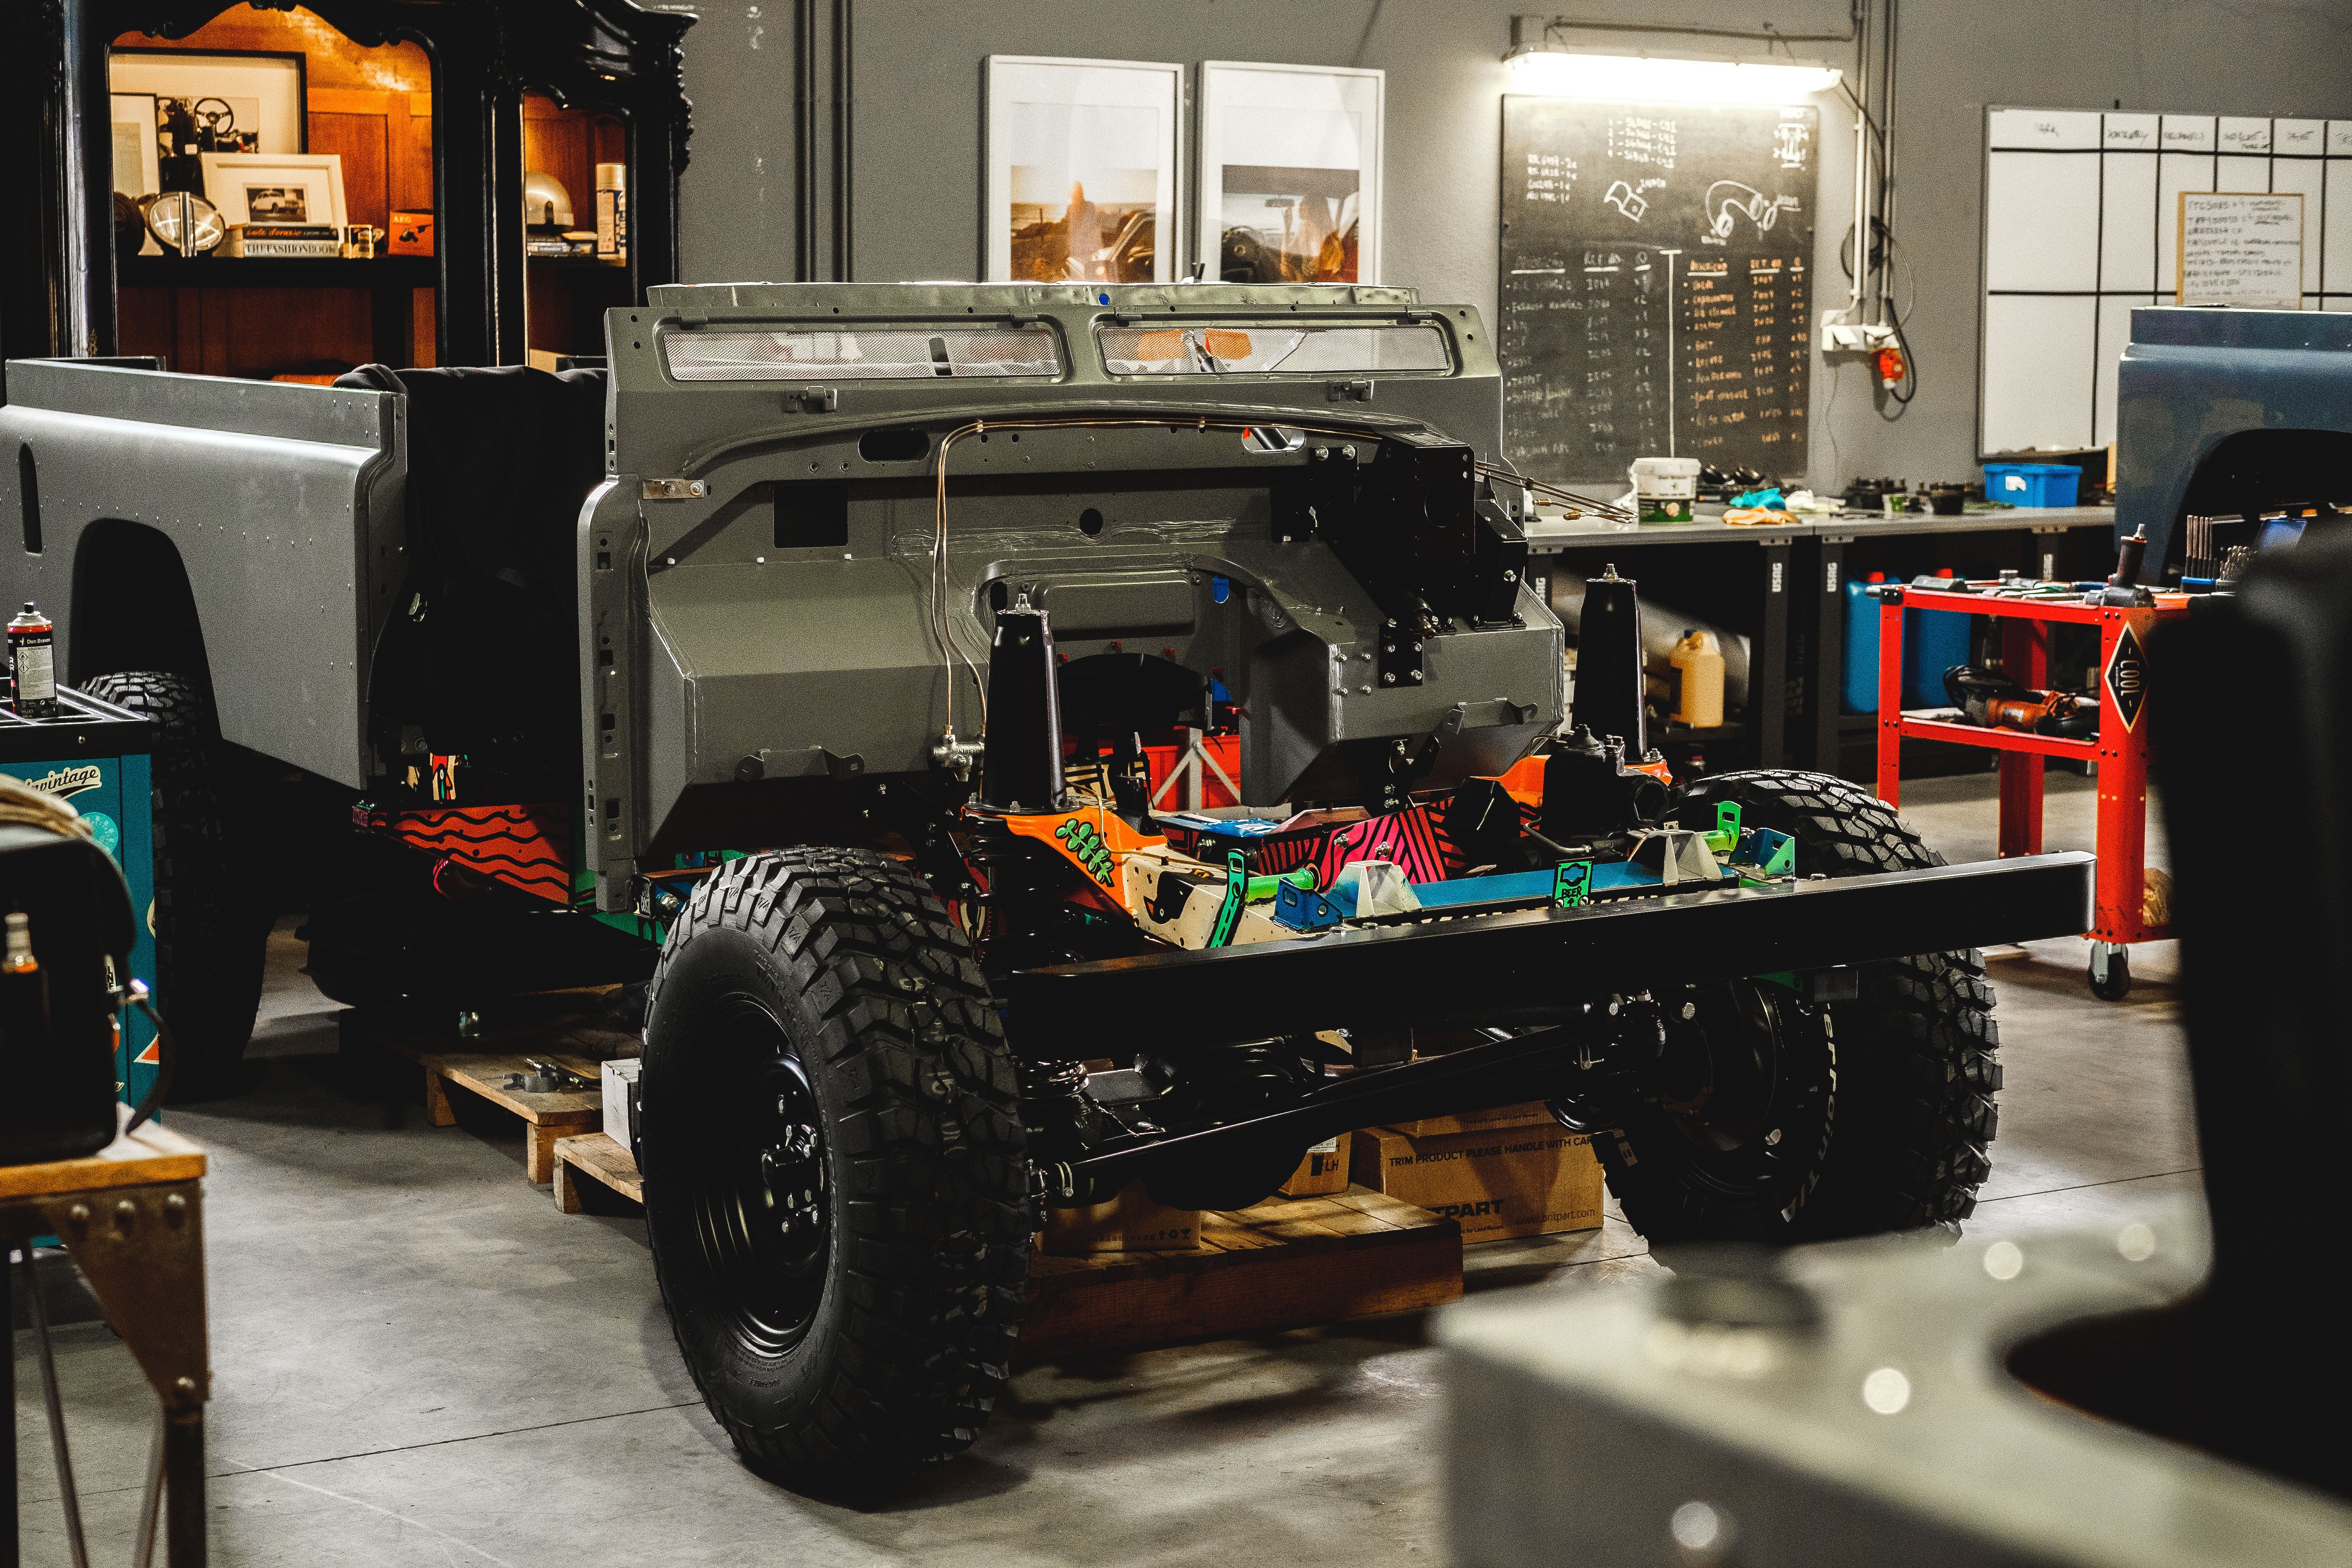 Meet The Founder Of Portugals Coolest Vintage Car Company Huckberry Land Rover Defender Challenge What Are Some Challenges You Face With Each One